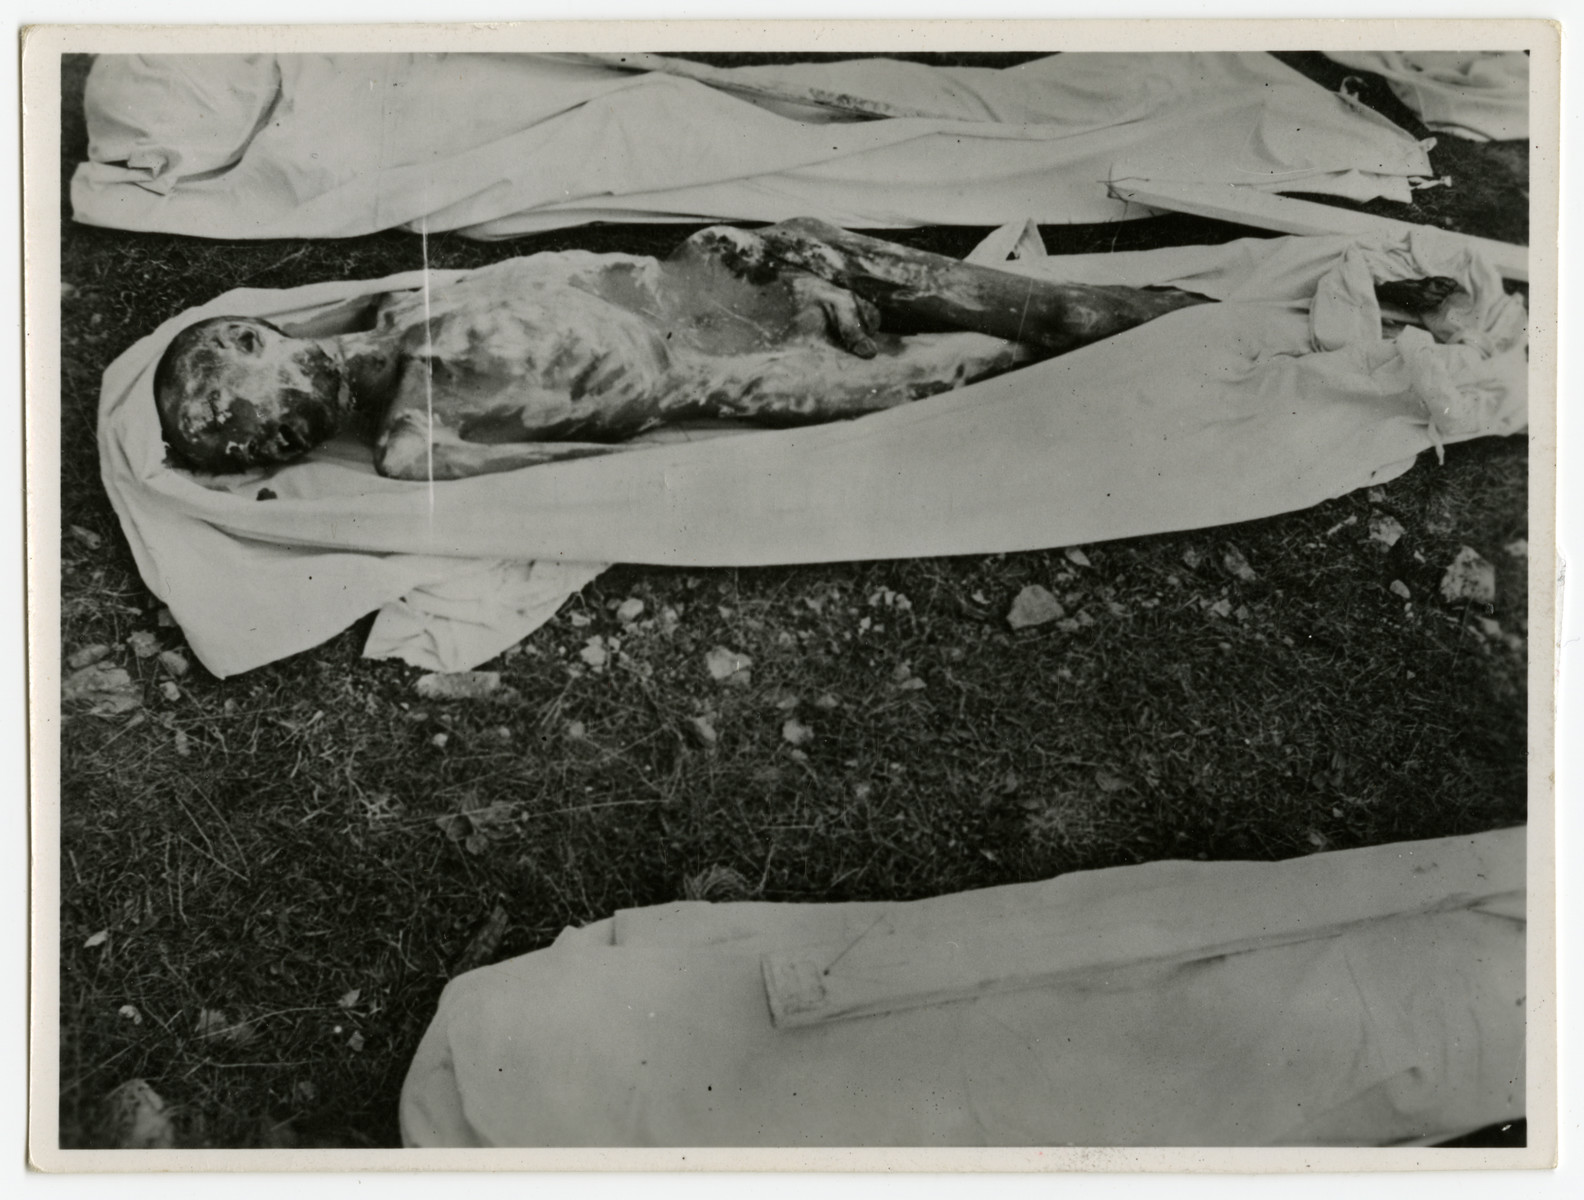 "The decomposed corpse of a prisoner that has been prerpared for burial by local German civilians.  Each corpse was buried in a sheet and assigned a numbered marker.   The original caption reads, ""Bodies prepared for burial by the civilians of Ohrdruf Germany. Some have probably been dead for several weeks. Ohrdruf concentration camp, Germany."" [sic]"